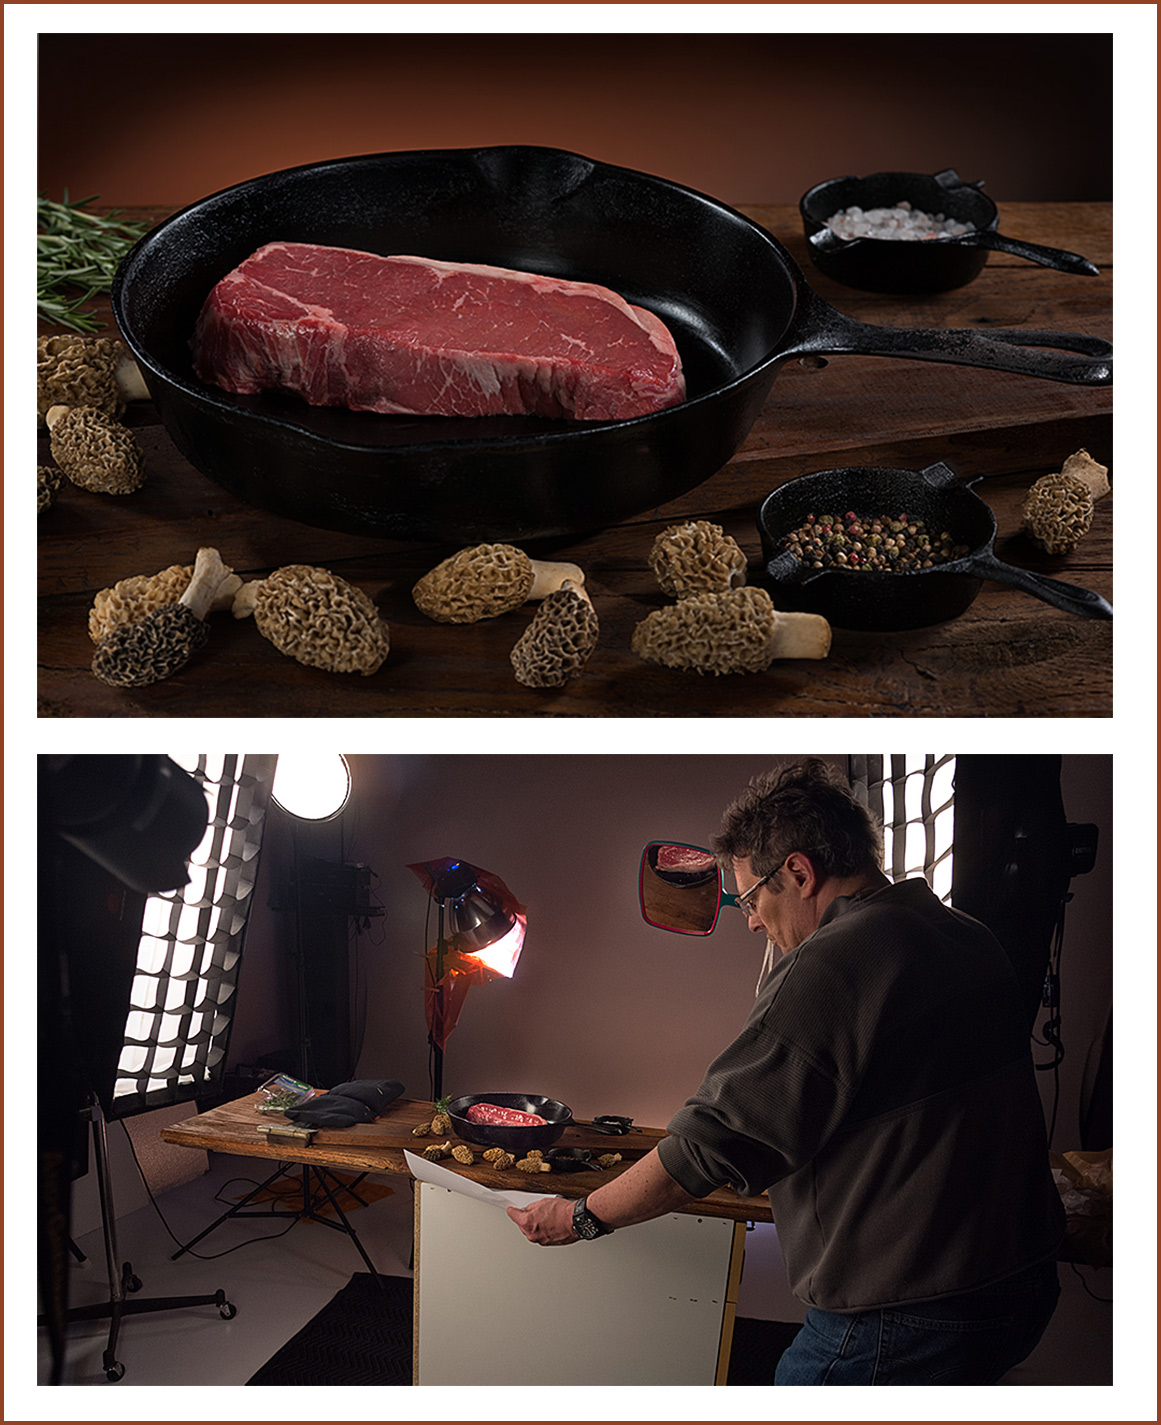 steak being photographed for restaurant hotel